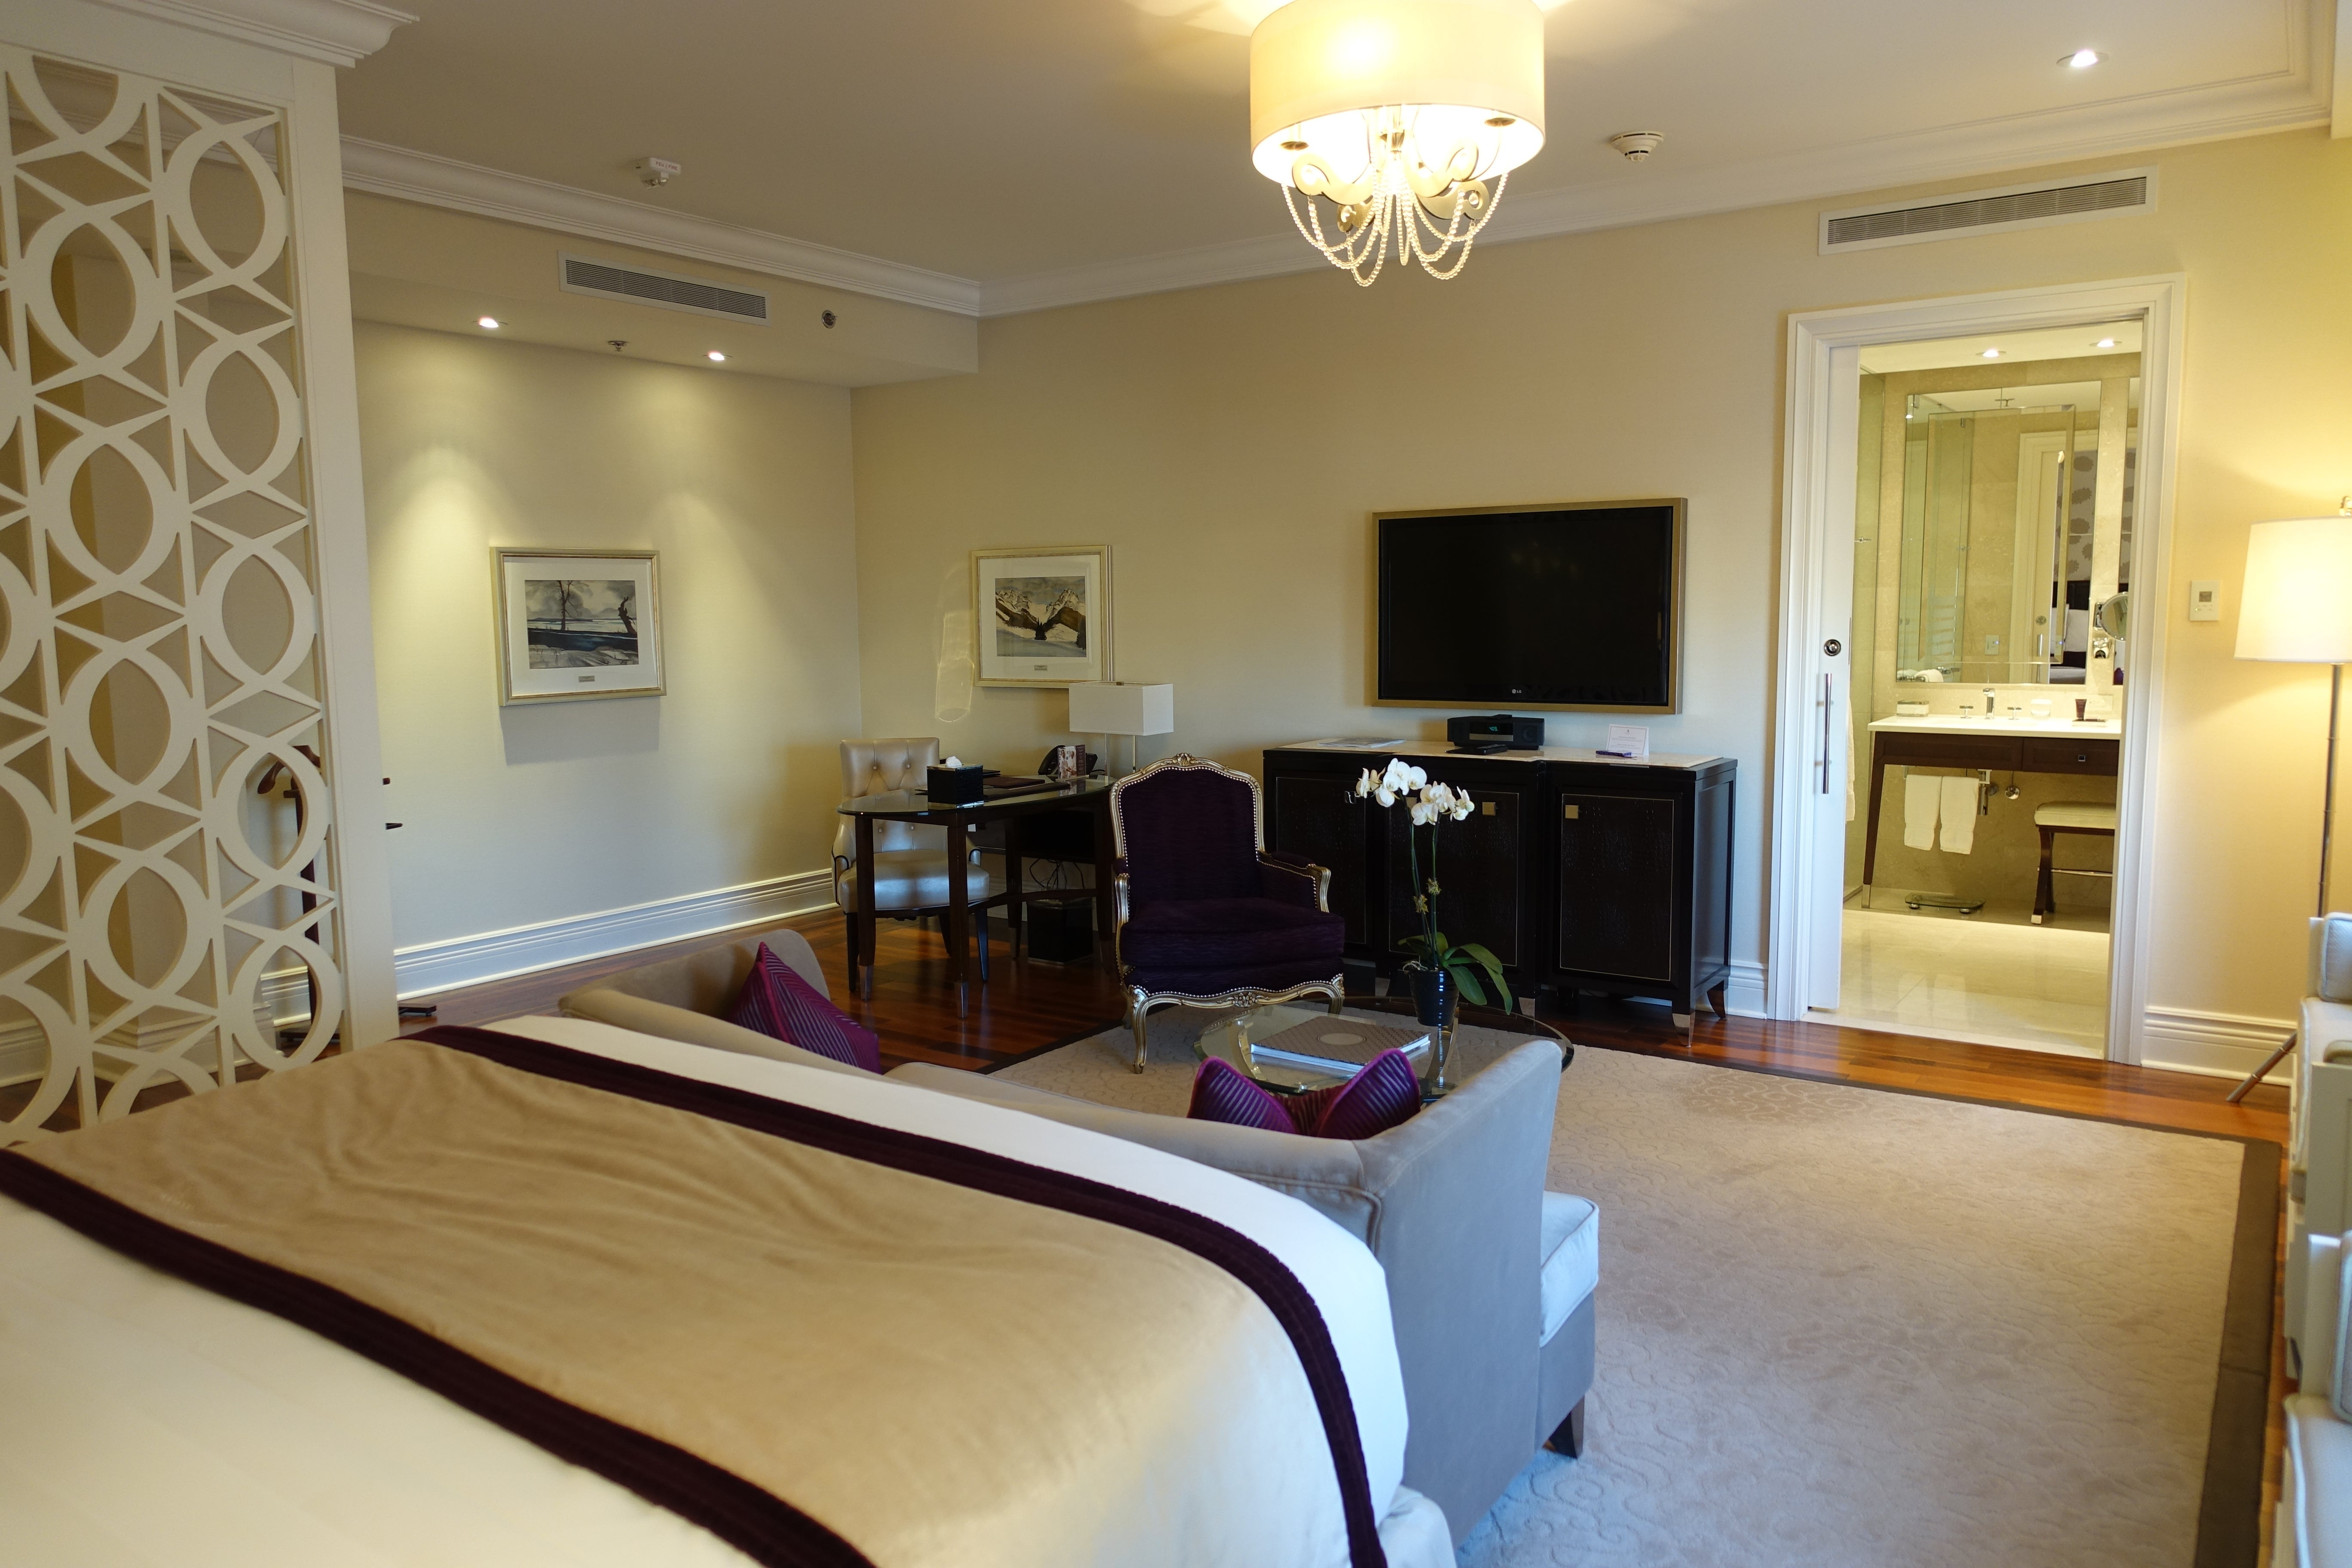 Hotel Review A Junior King Suite At The Ritz Carlton Montreal